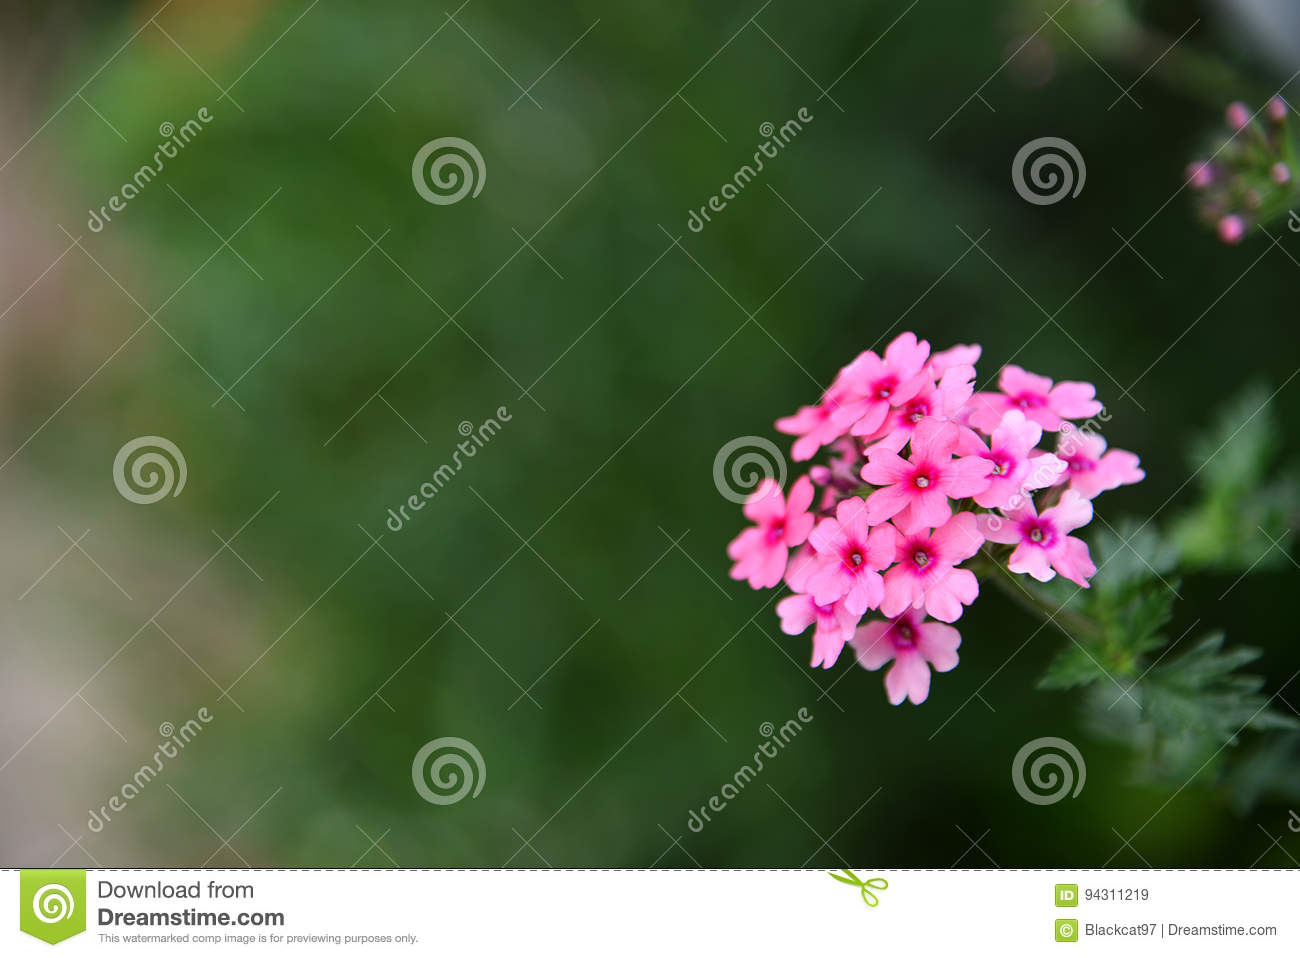 Egyptian starcluster pentas lanceolata stock image image of macro pentas lanceolata or egyptian starcluster is a perennial herb native to tropical eastern africa and arabic penninsula the color of their flowers varies mightylinksfo